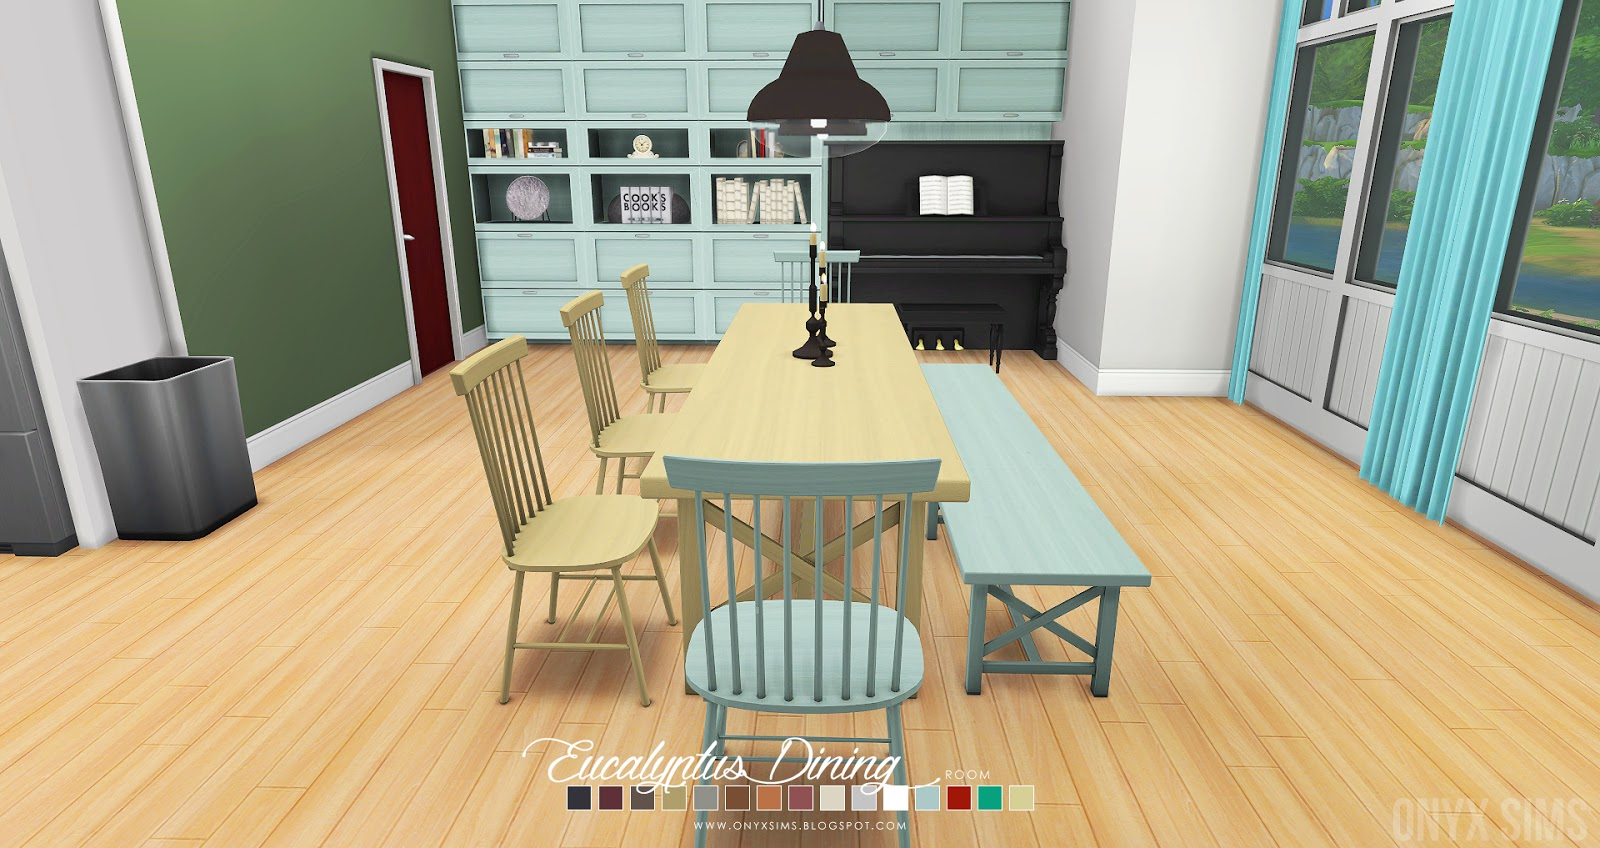 The Eucalyptus Dining Room Comprises Of 17 New Items That Come In An About  15 Color Swatches; Some Items Have Less. This Updated Version Of The Dining  Room ...